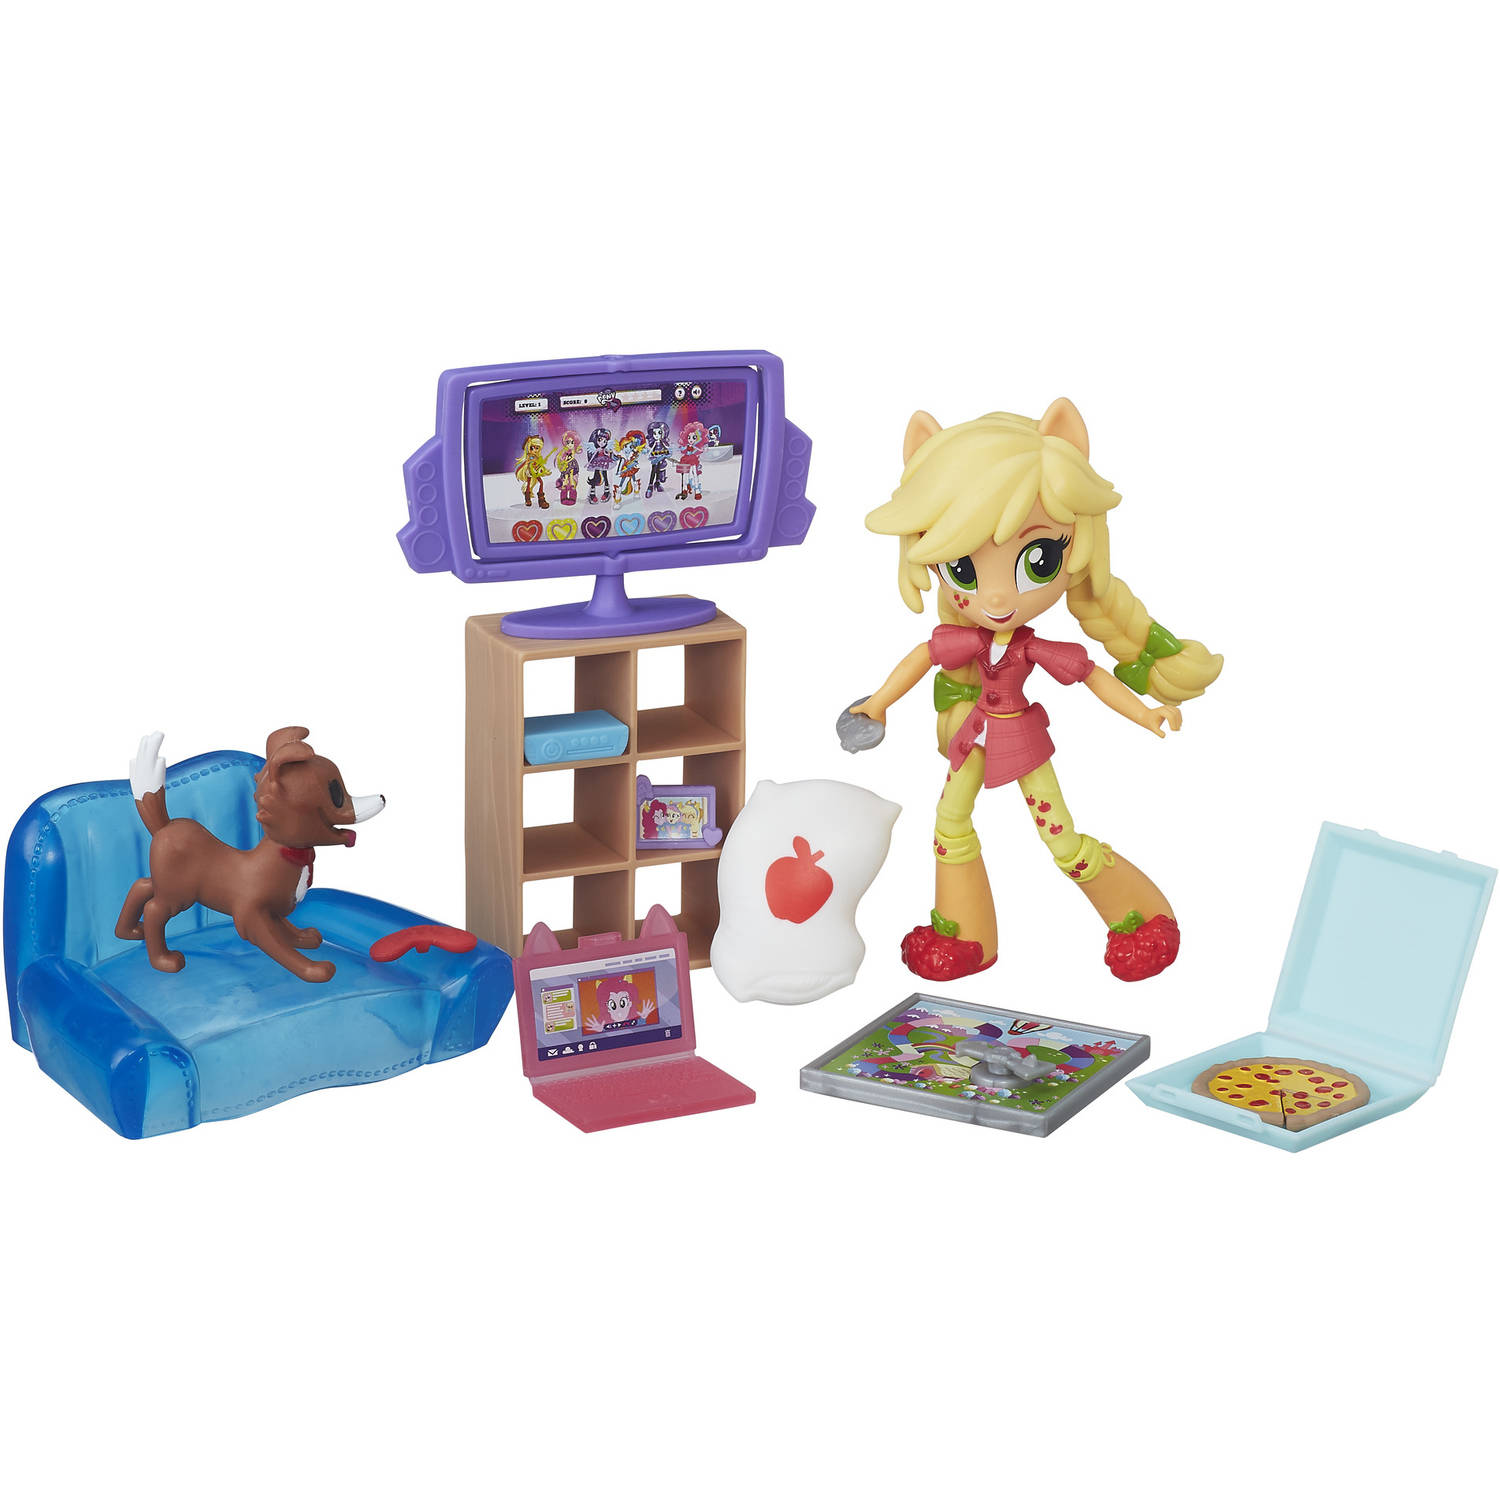 My Little Pony Equestria Girls Minis Applejack Slumber Party Games Set by Hasbro